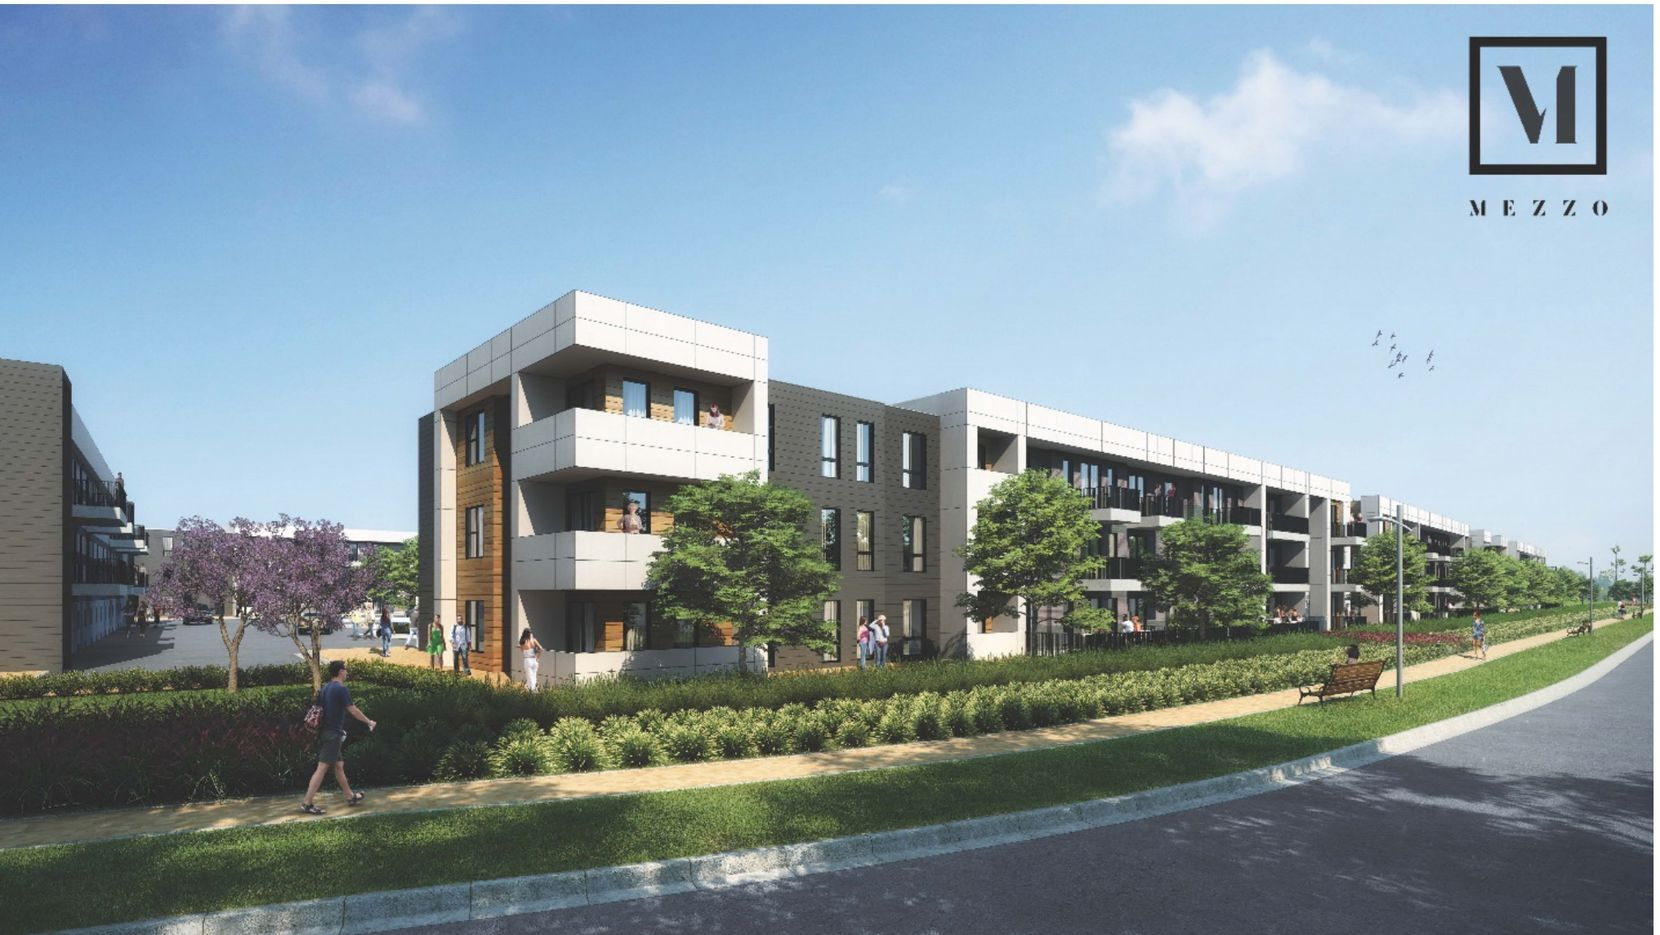 ZOM Living's Mezzo apartments will open in the third quarter of 2021.